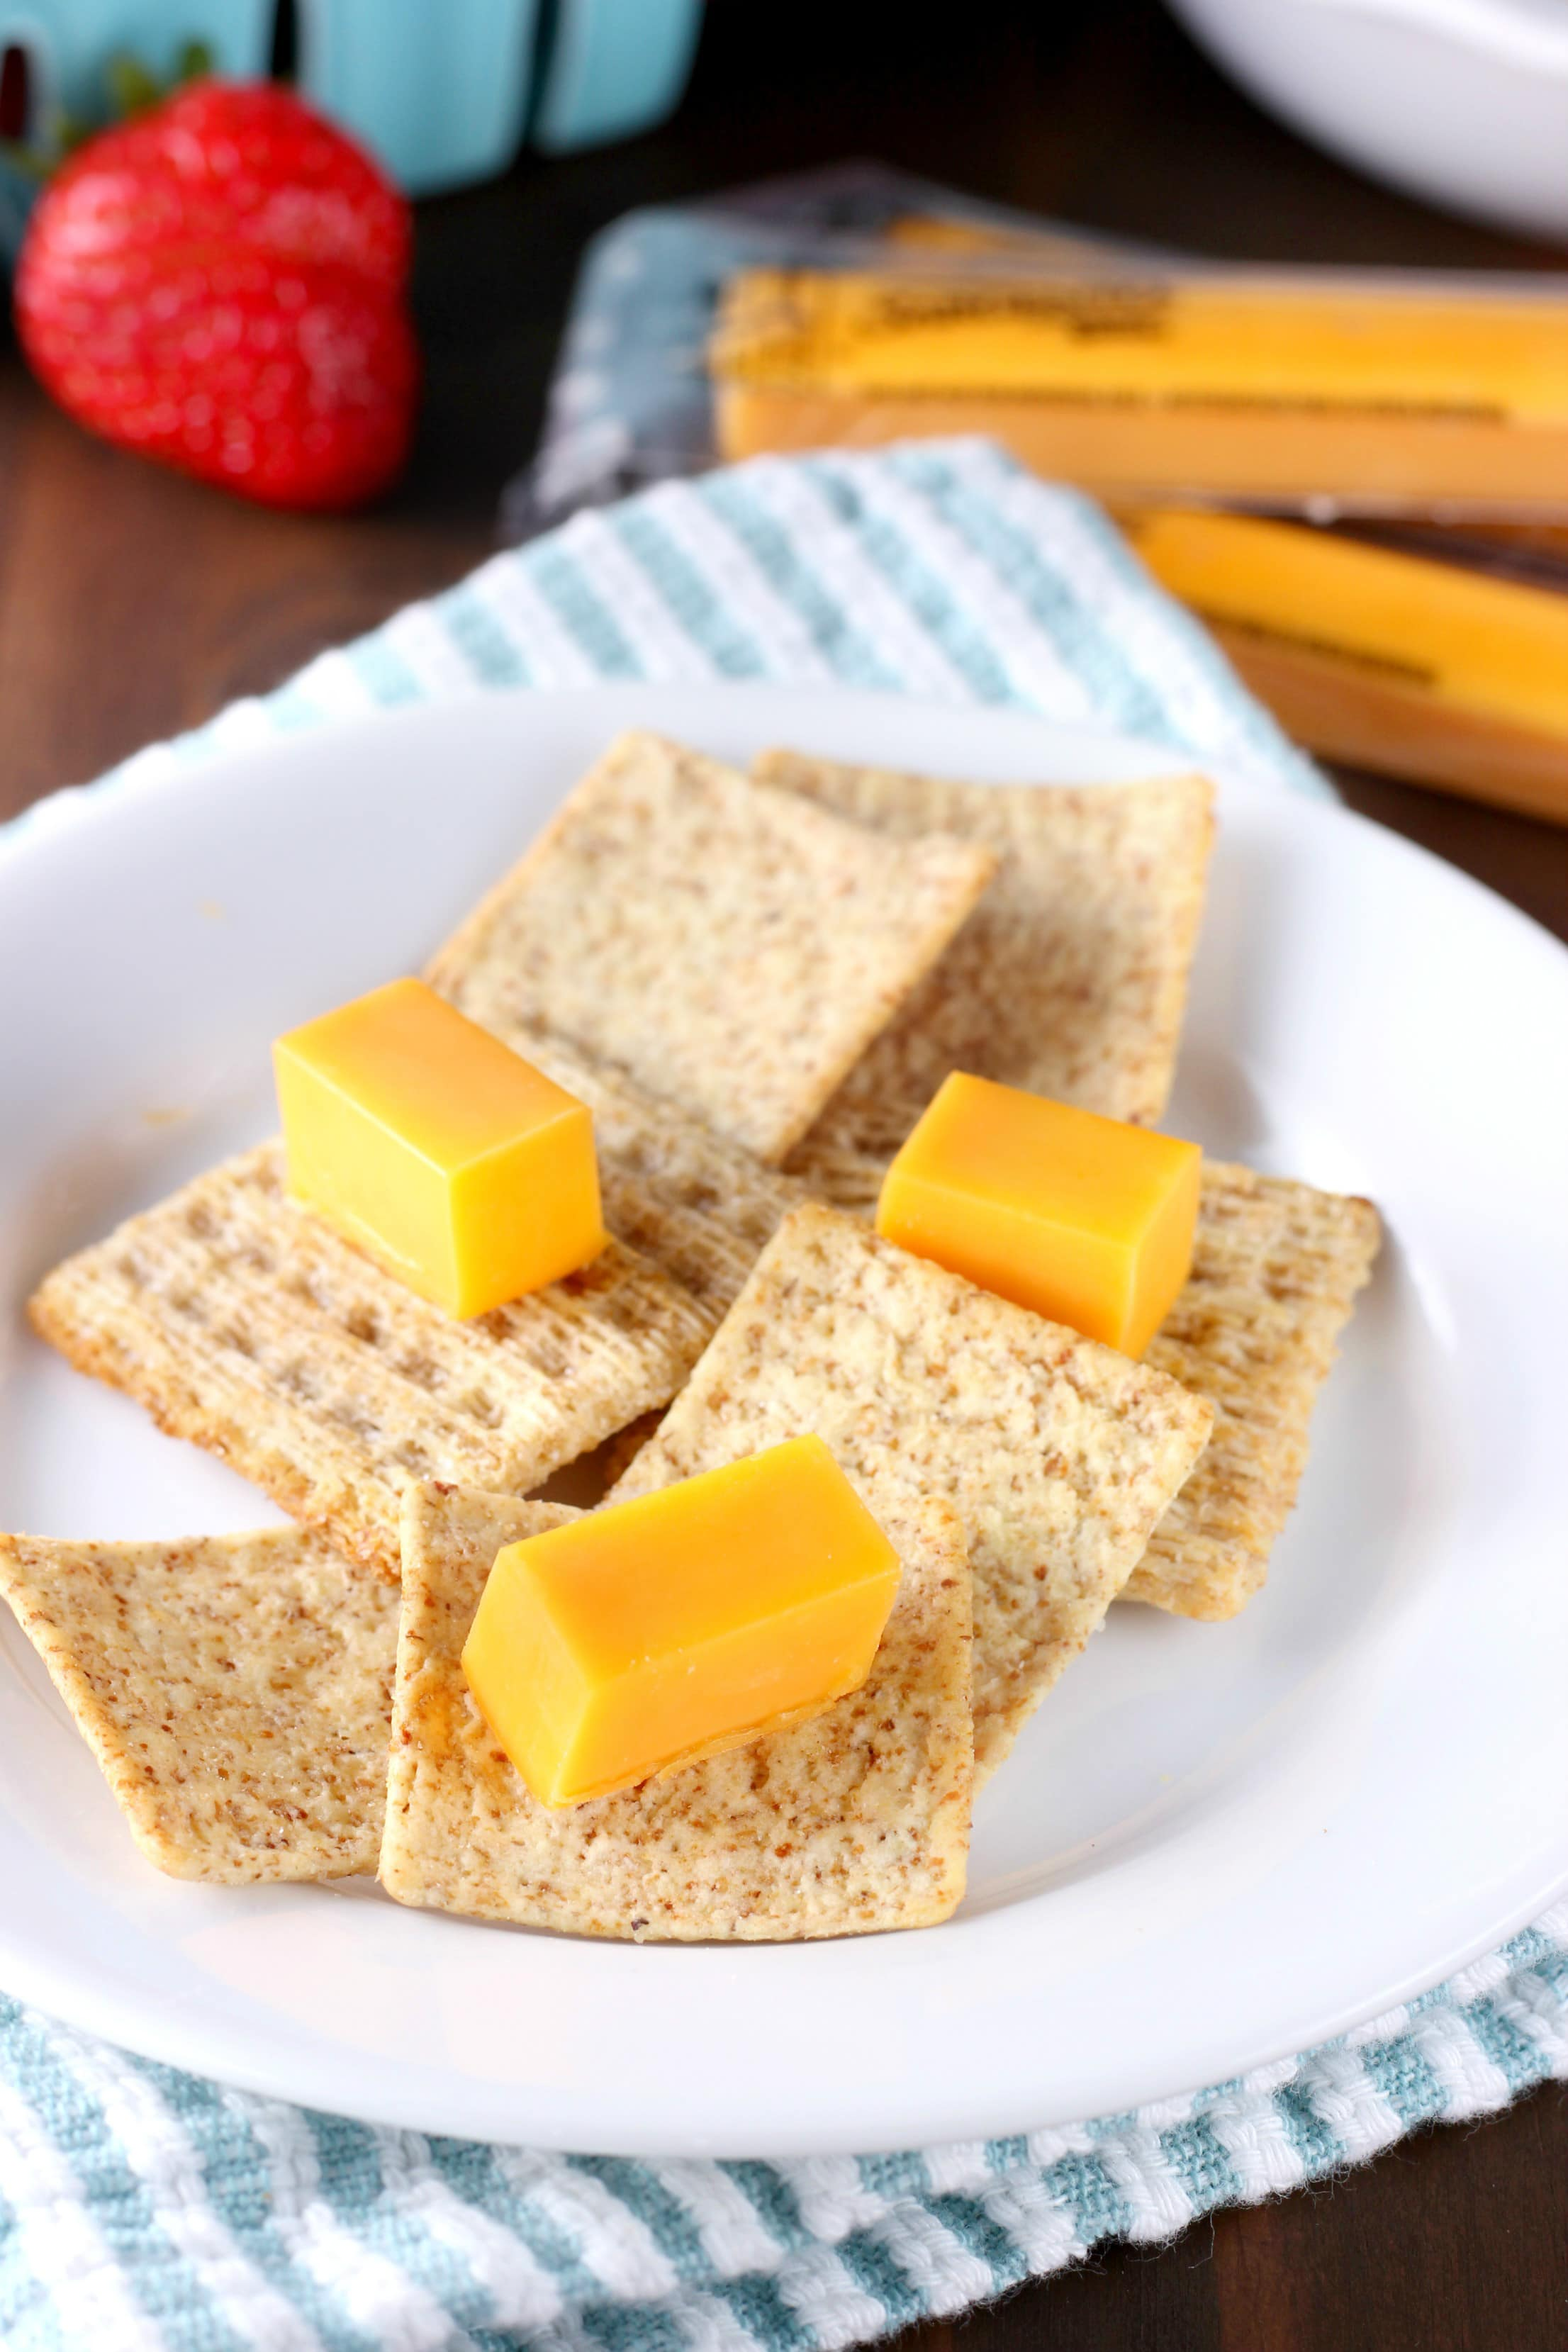 Cheese and Crackers Plate